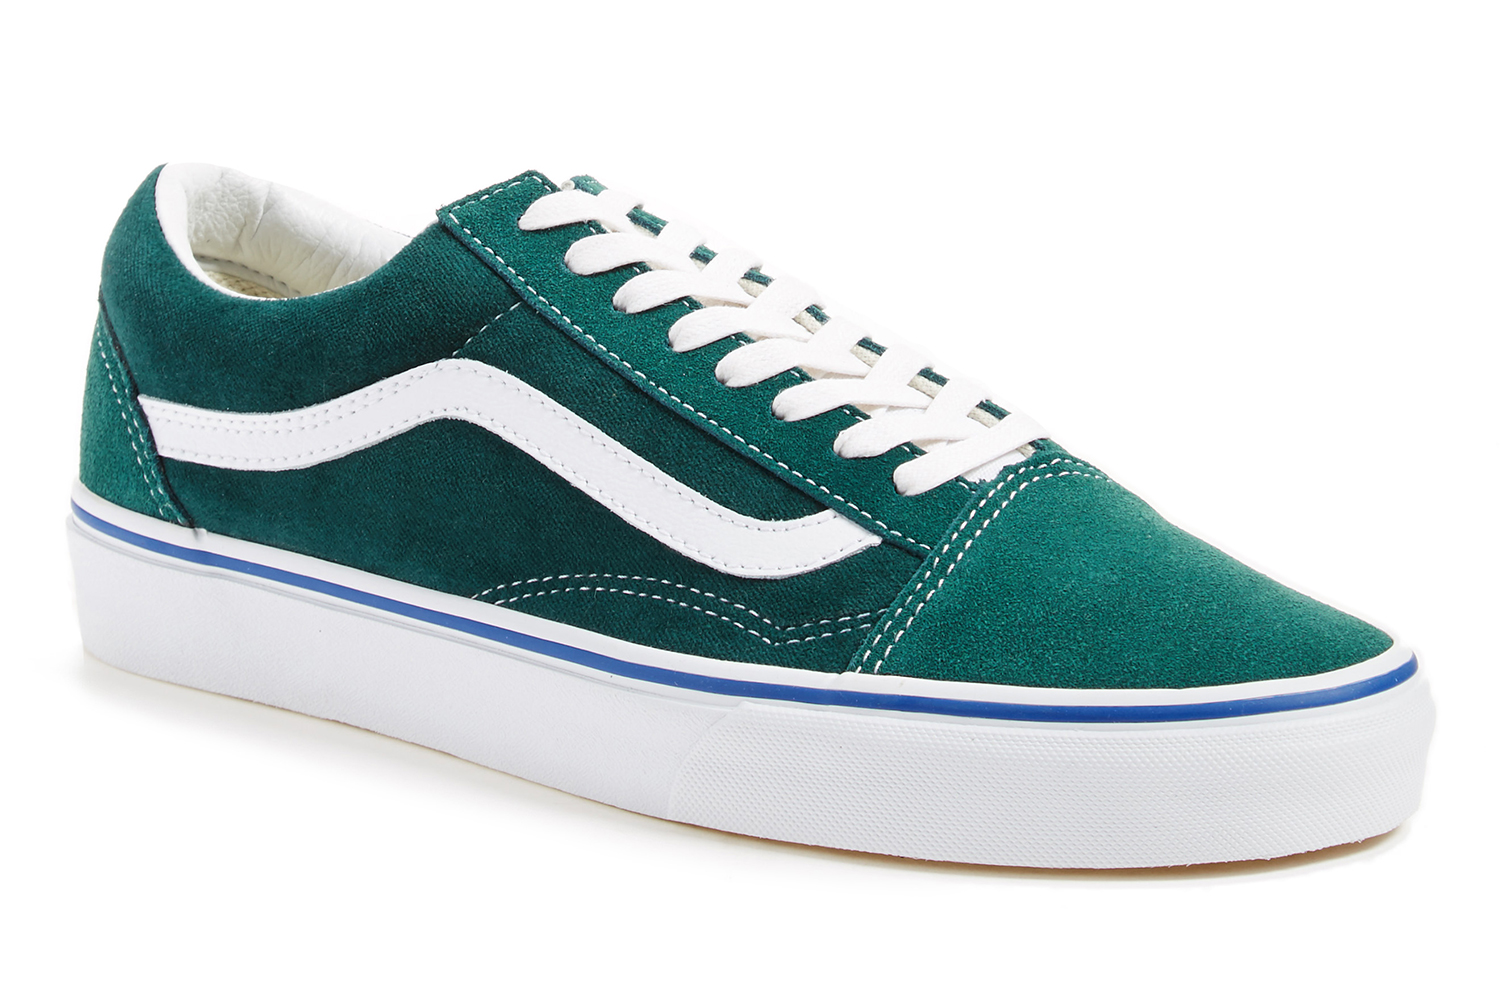 Vans x Nordstrom - TRENDS periodical